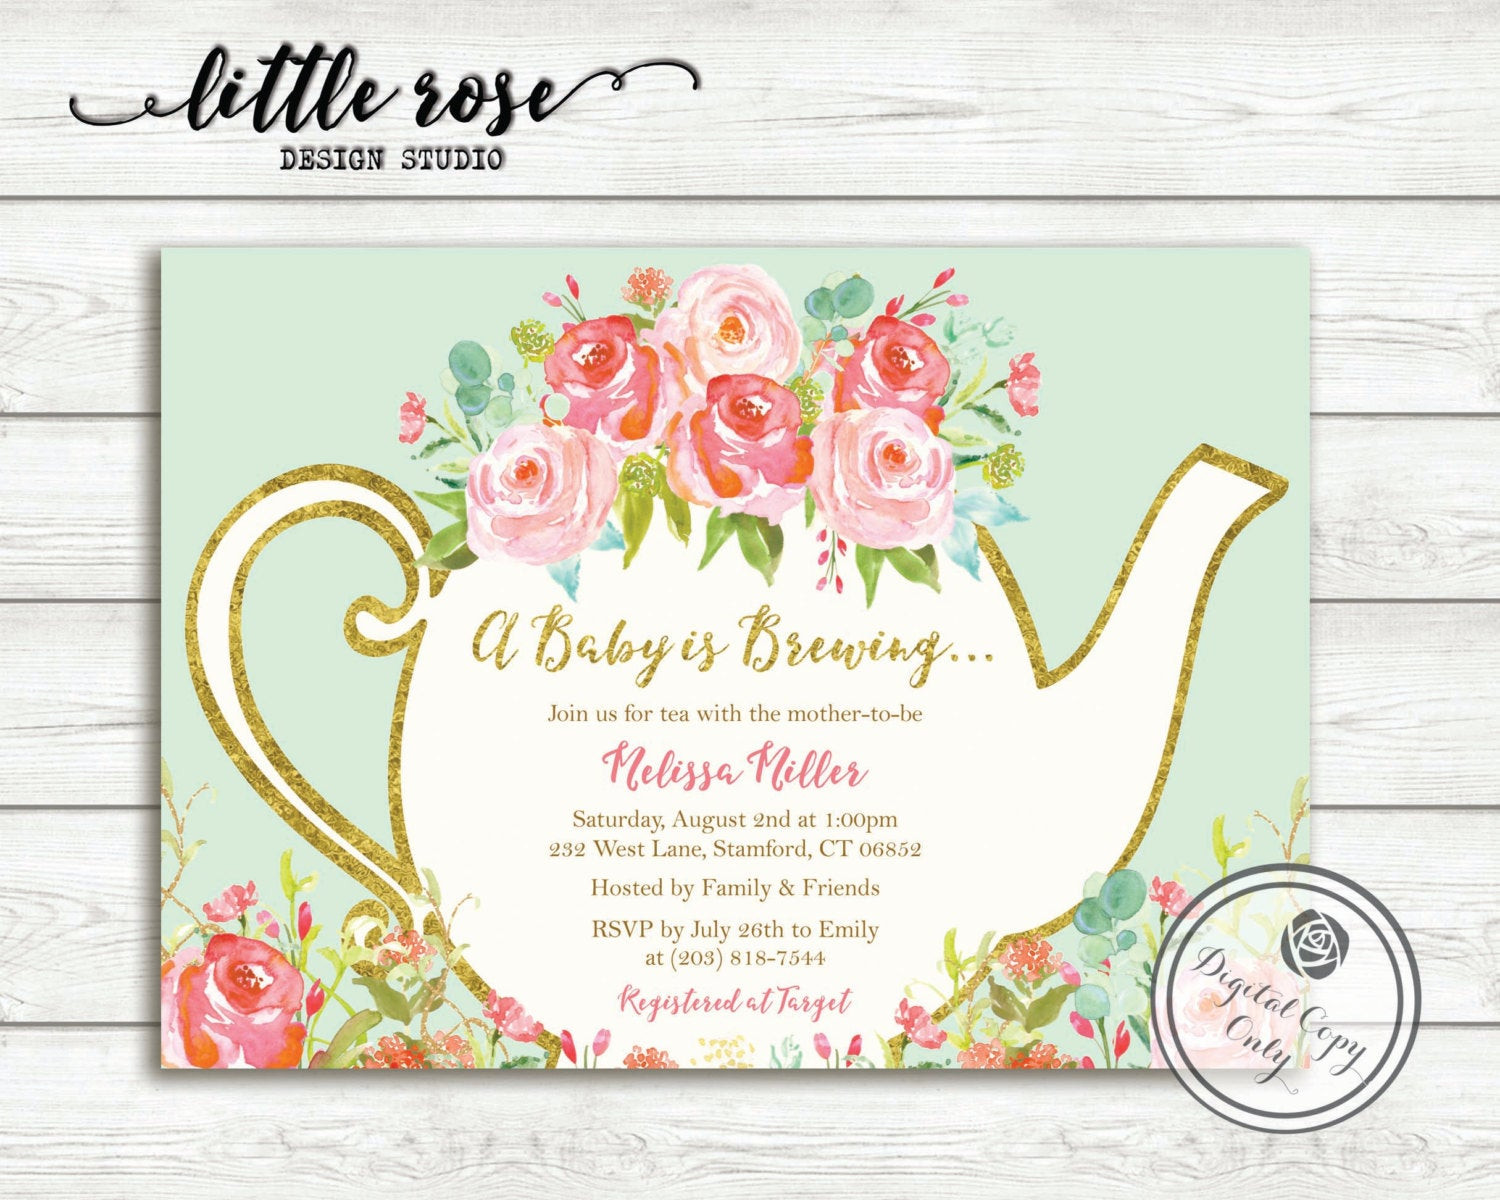 Baby Shower Invitations Tea Party  A Baby is Brewing Baby Shower Tea Party Invitation Garden